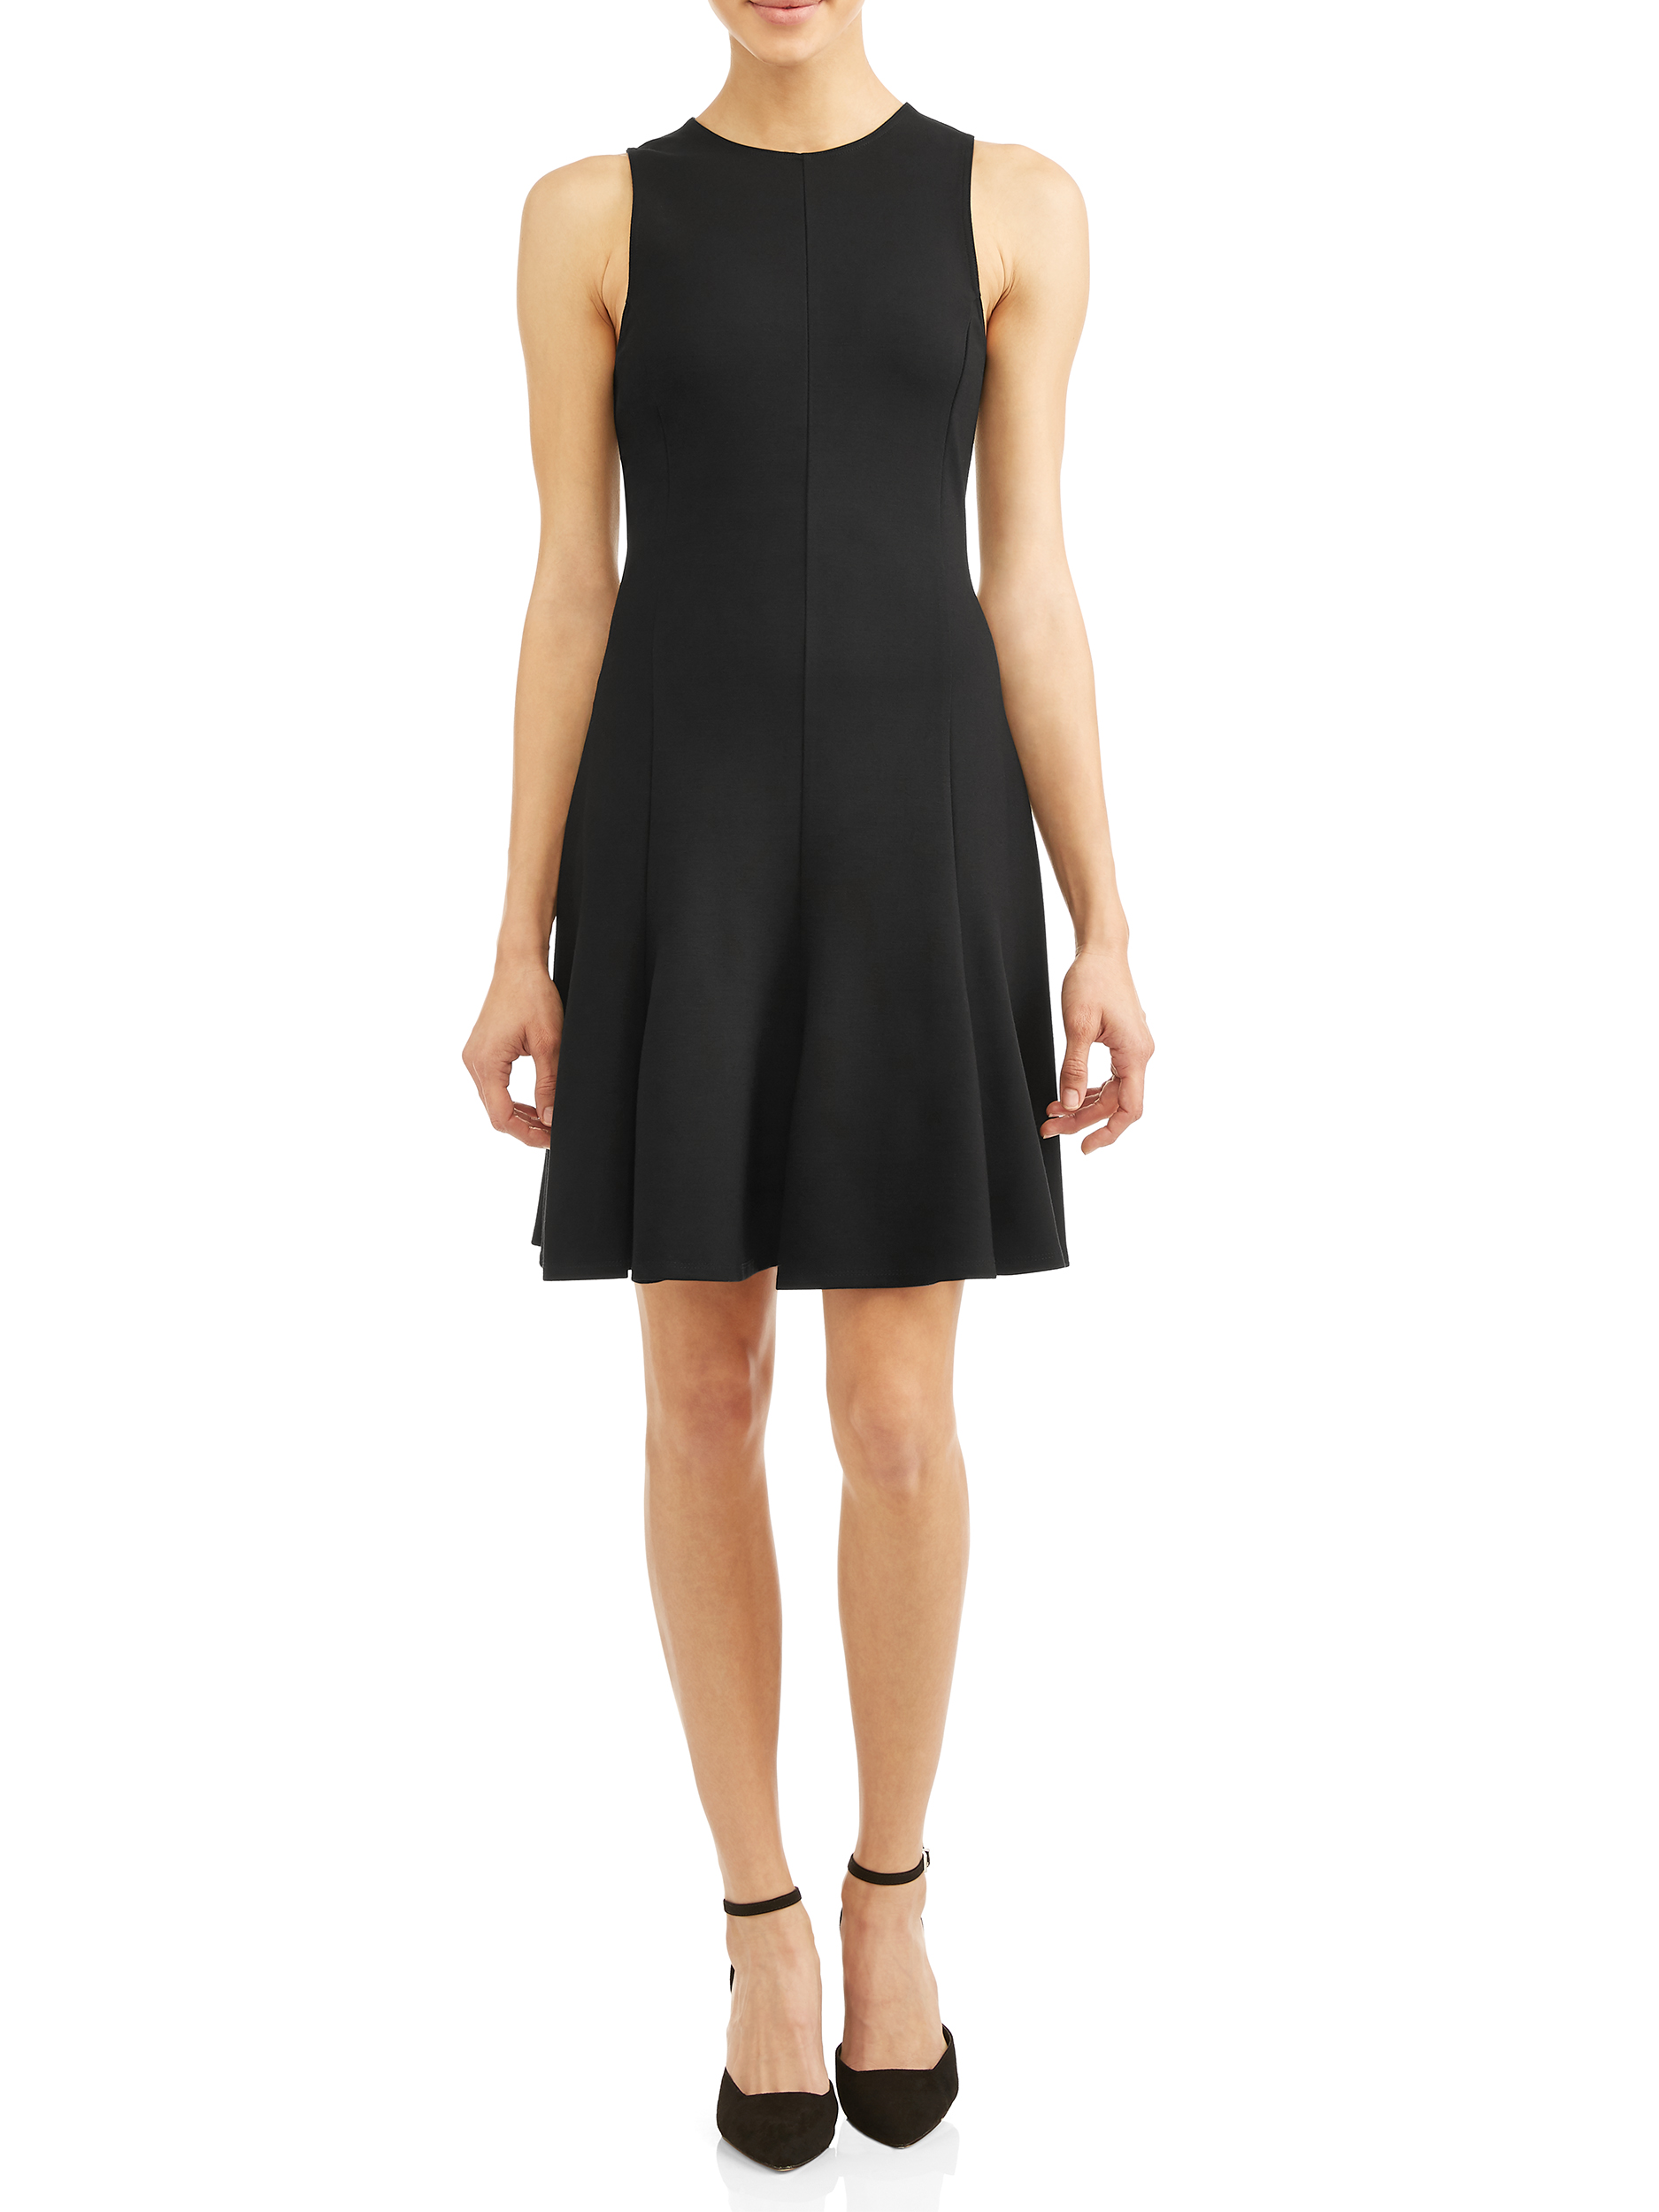 Sleeveless A-Line Black Dress